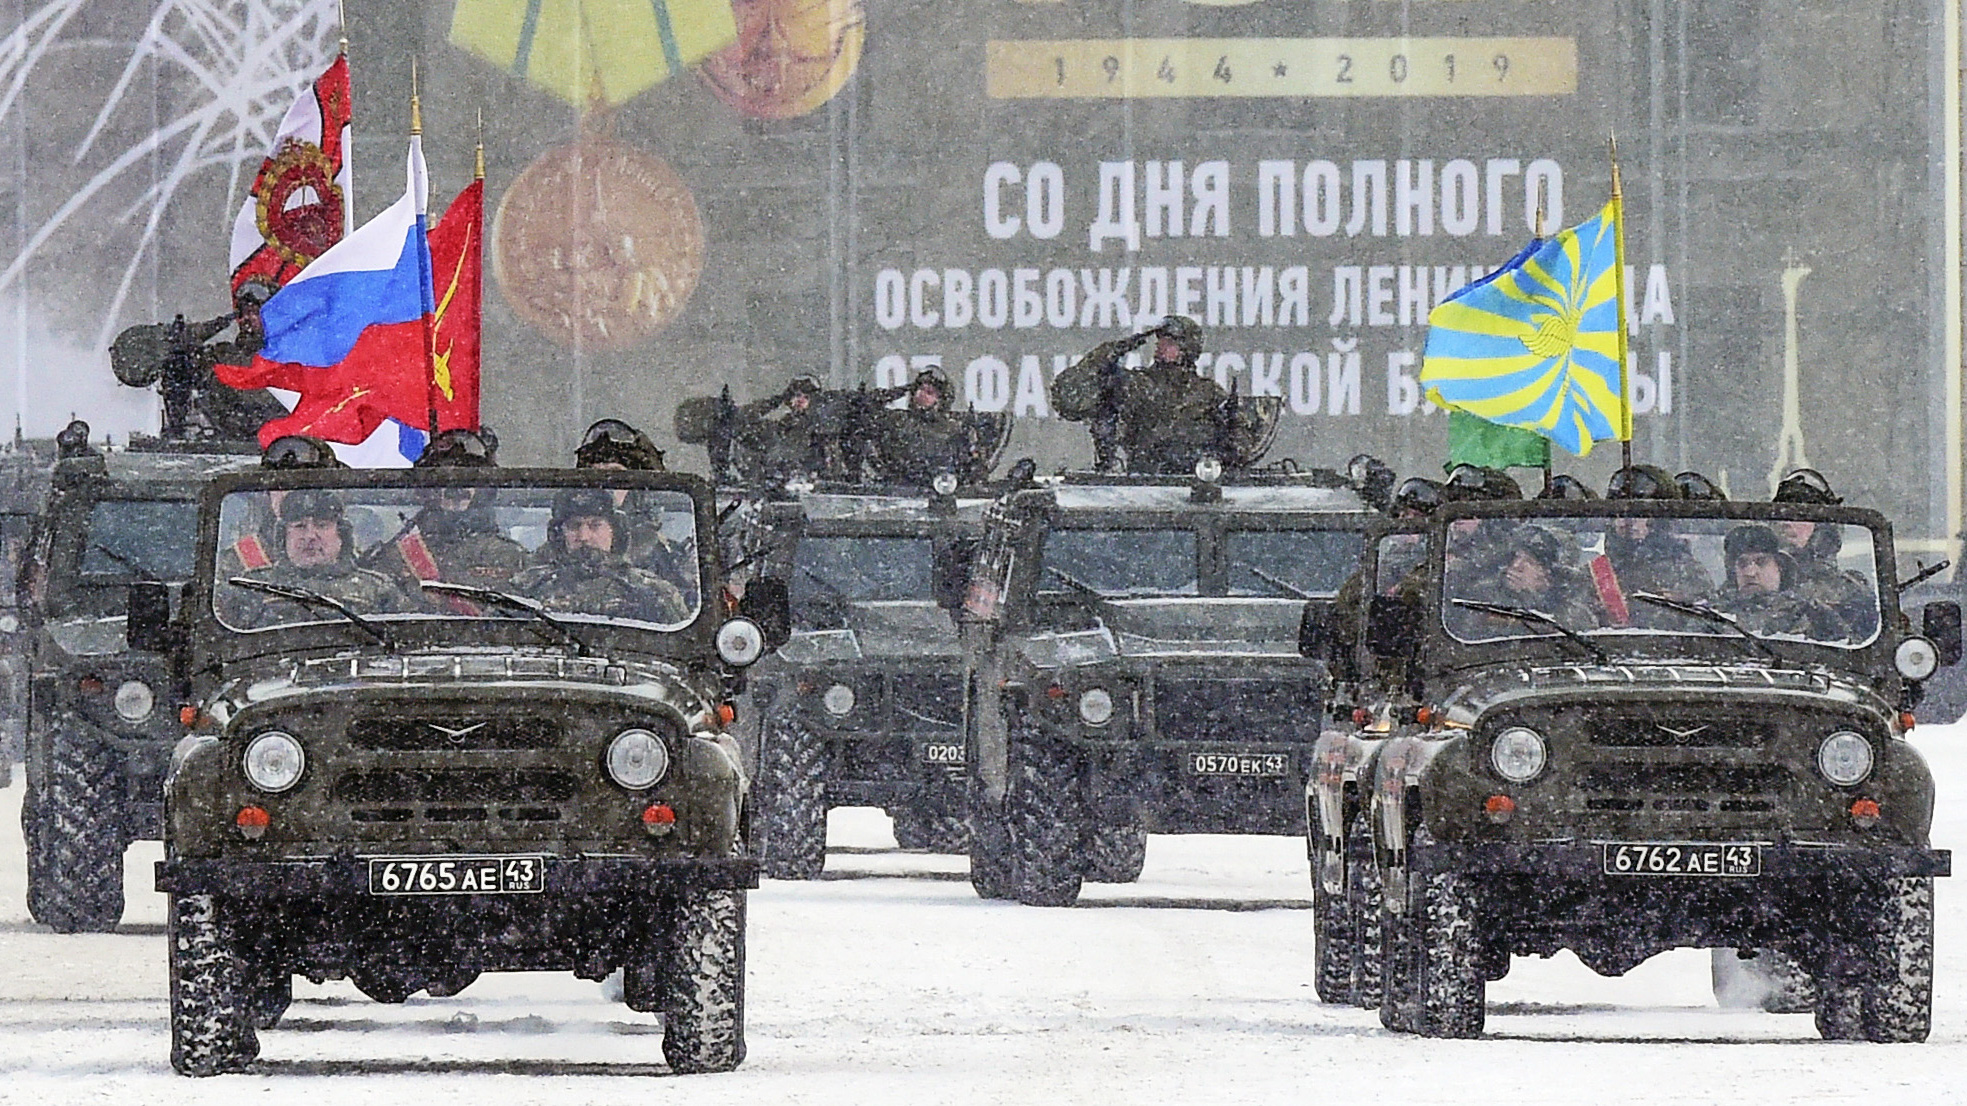 Russian servicemen take part of a military parade marking the 75th anniversary of the lifting of the Nazi siege of Leningrad, at Dvortsovaya Square in Saint Petersburg on January 27, 2019. - Tanks and air defense missile systems rolled through the heart of Saint Petersburg on Sunday as the city formerly known as Leningrad marked the 75th anniversary of the end of a World War II siege that claimed more than 800,000 lives. (OLGA MALTSEVA/AFP/Getty Images)